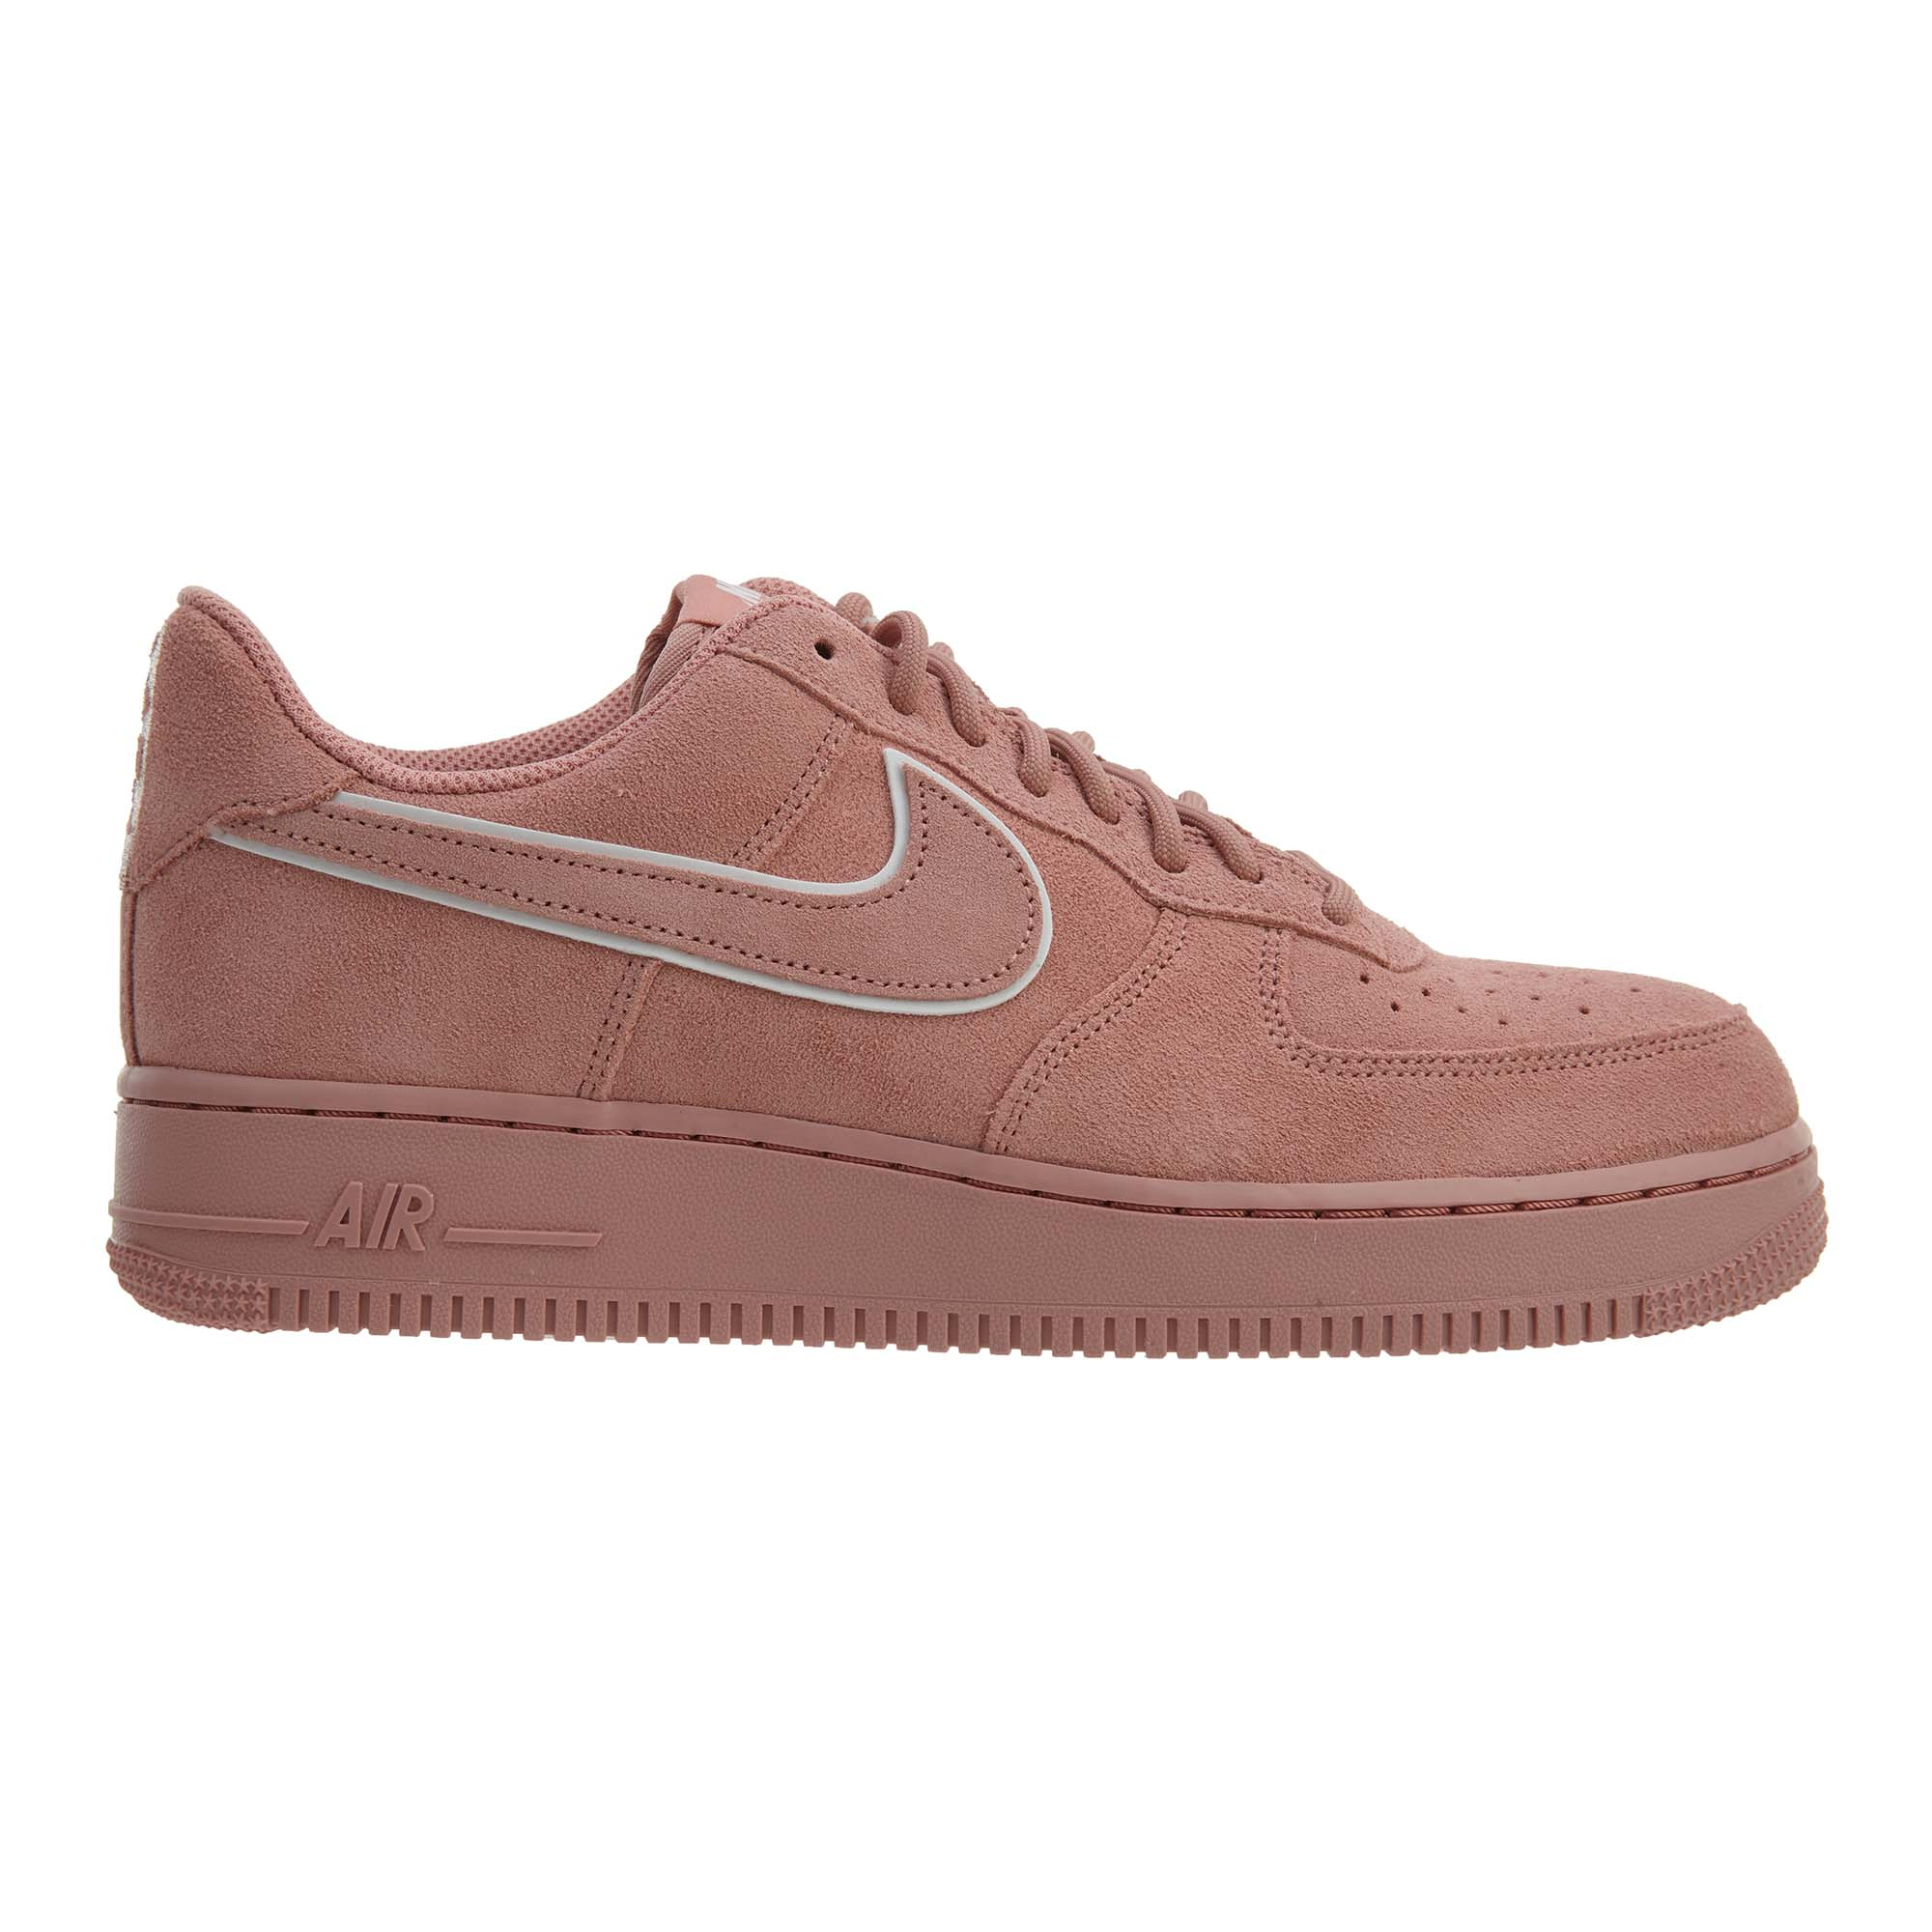 Nike Air Force 1 07 Lv8 Suede Red Stardust Red Stardust - AA1117-601